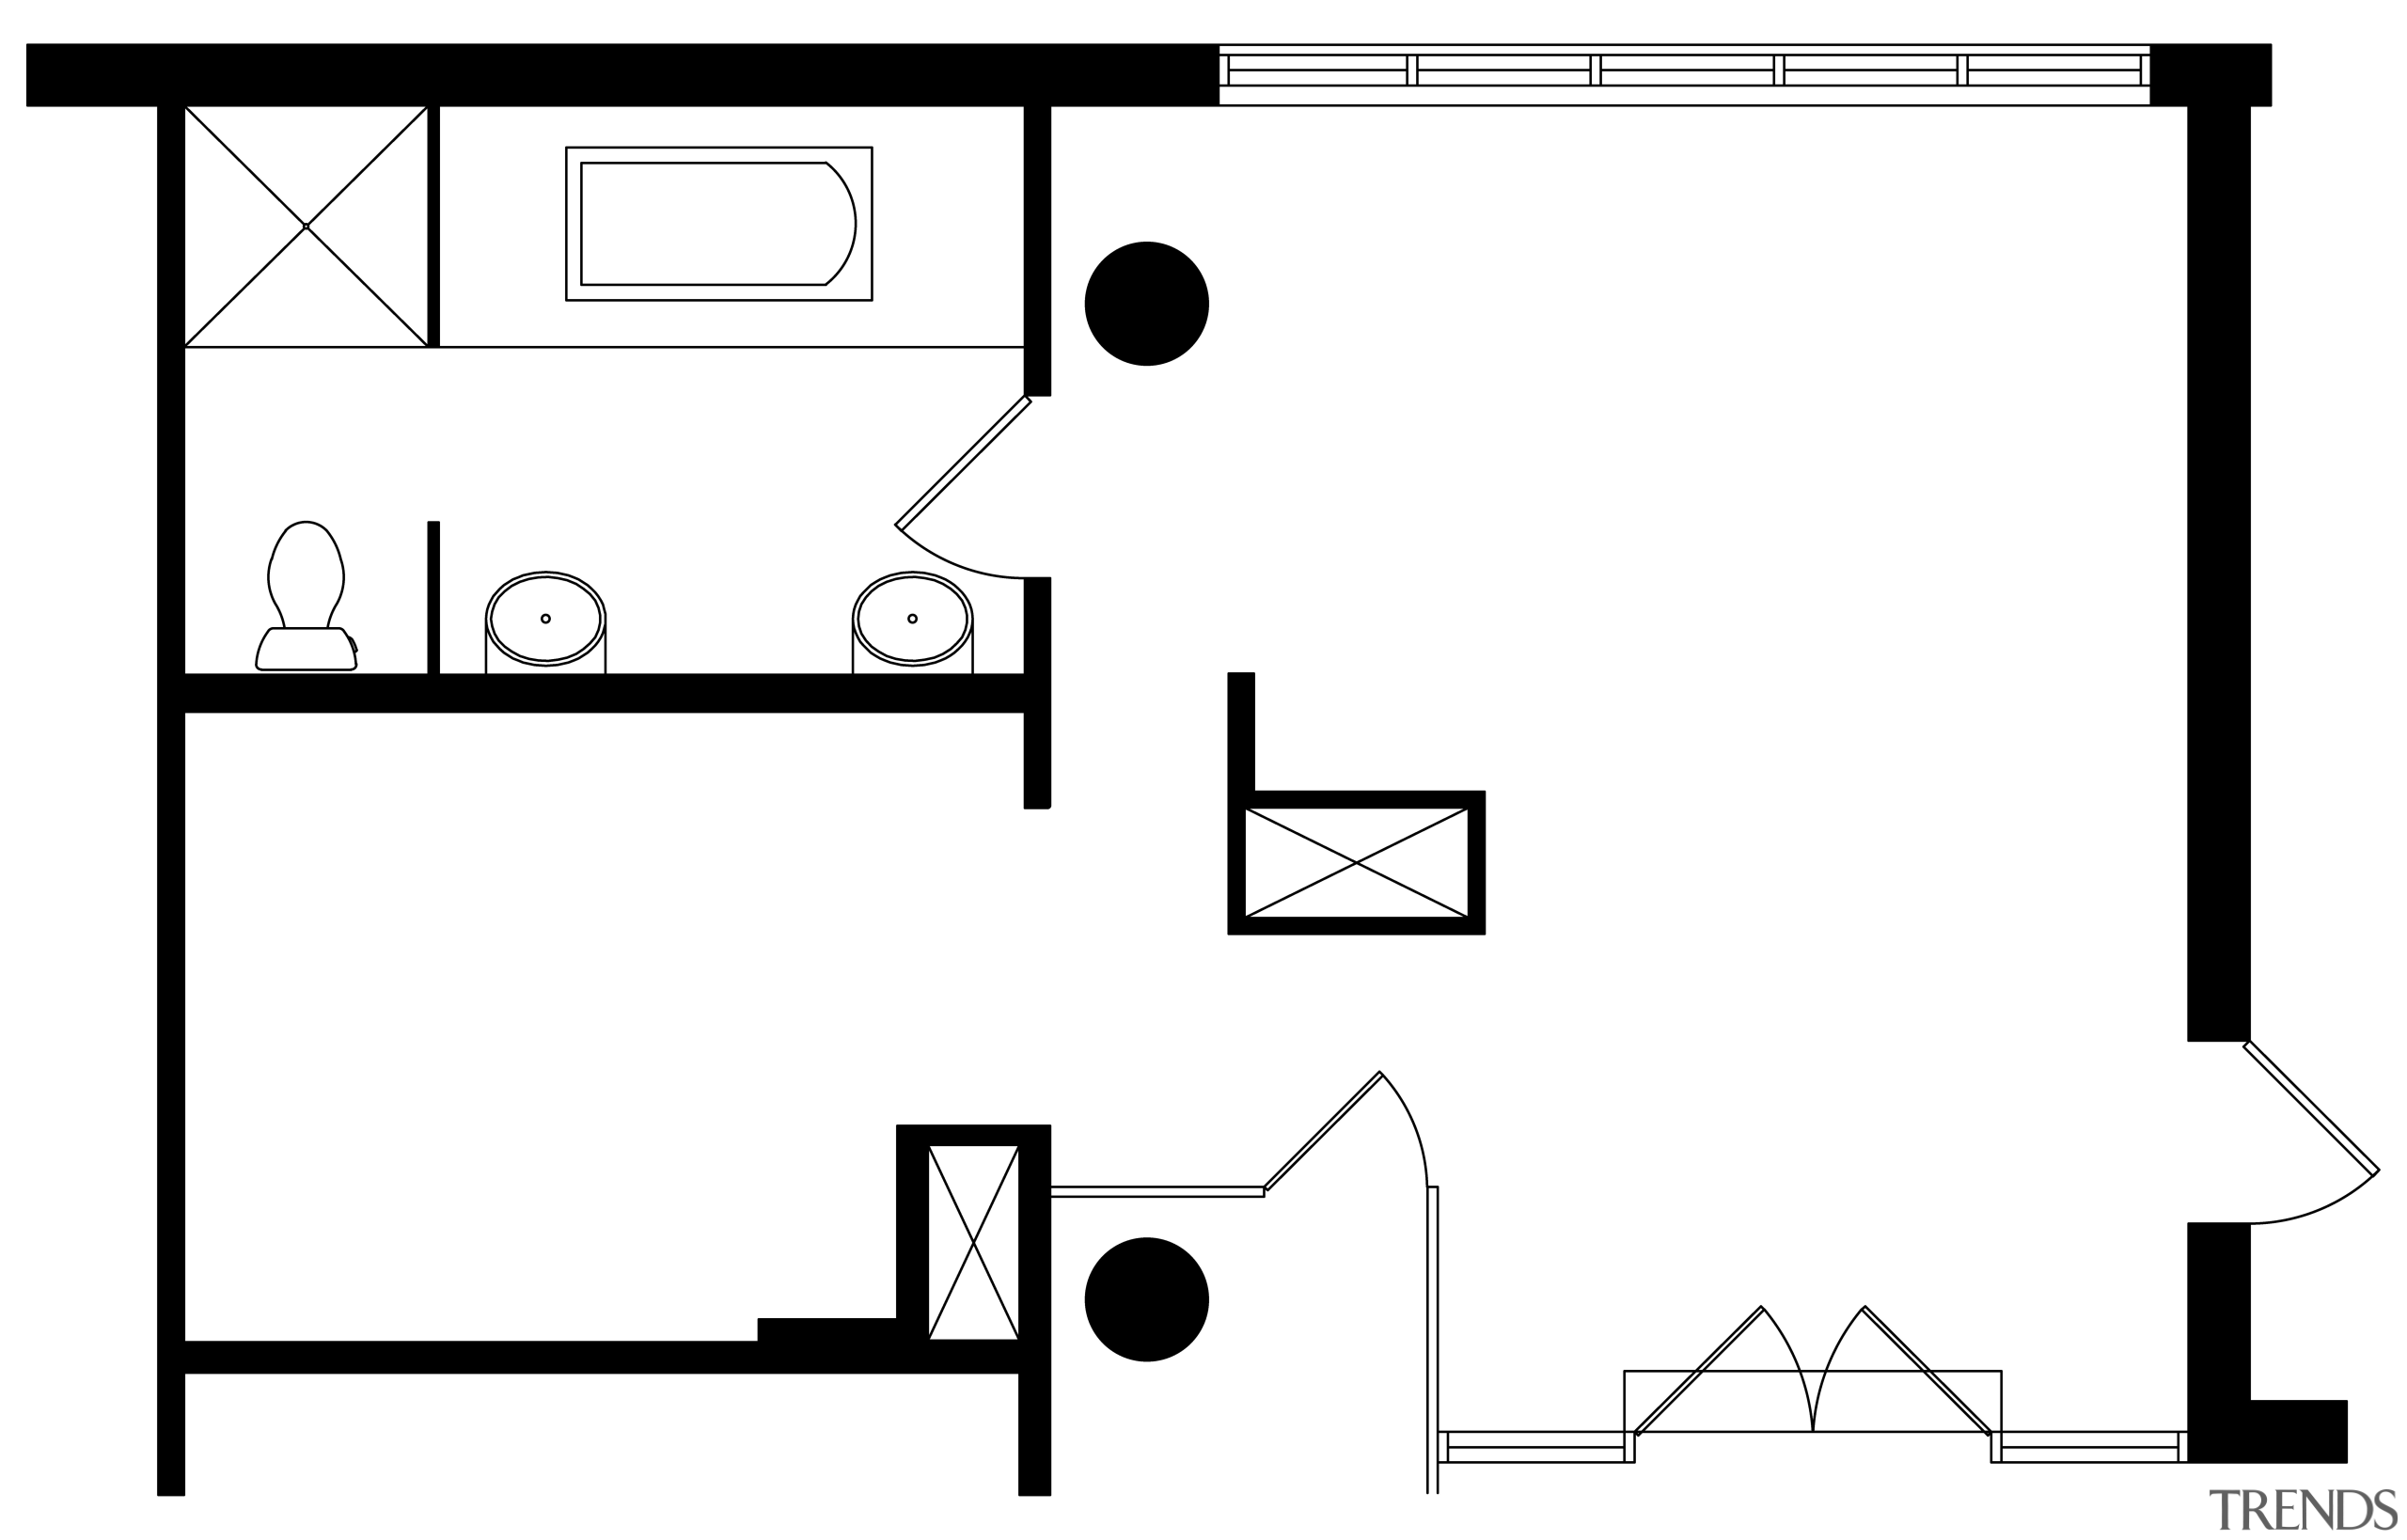 This master suite plan shows the poor distribution angle, area, black, black and white, design, diagram, drawing, font, furniture, line, pattern, product, product design, square, technology, text, white